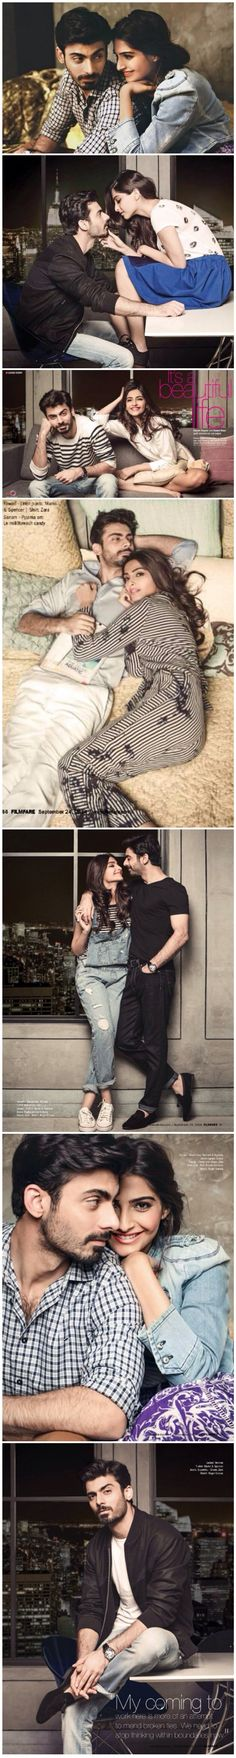 Sonam Kapoor, Fawad Khan get lovey-dovey on Filmfare.Sonam you lucky girl.